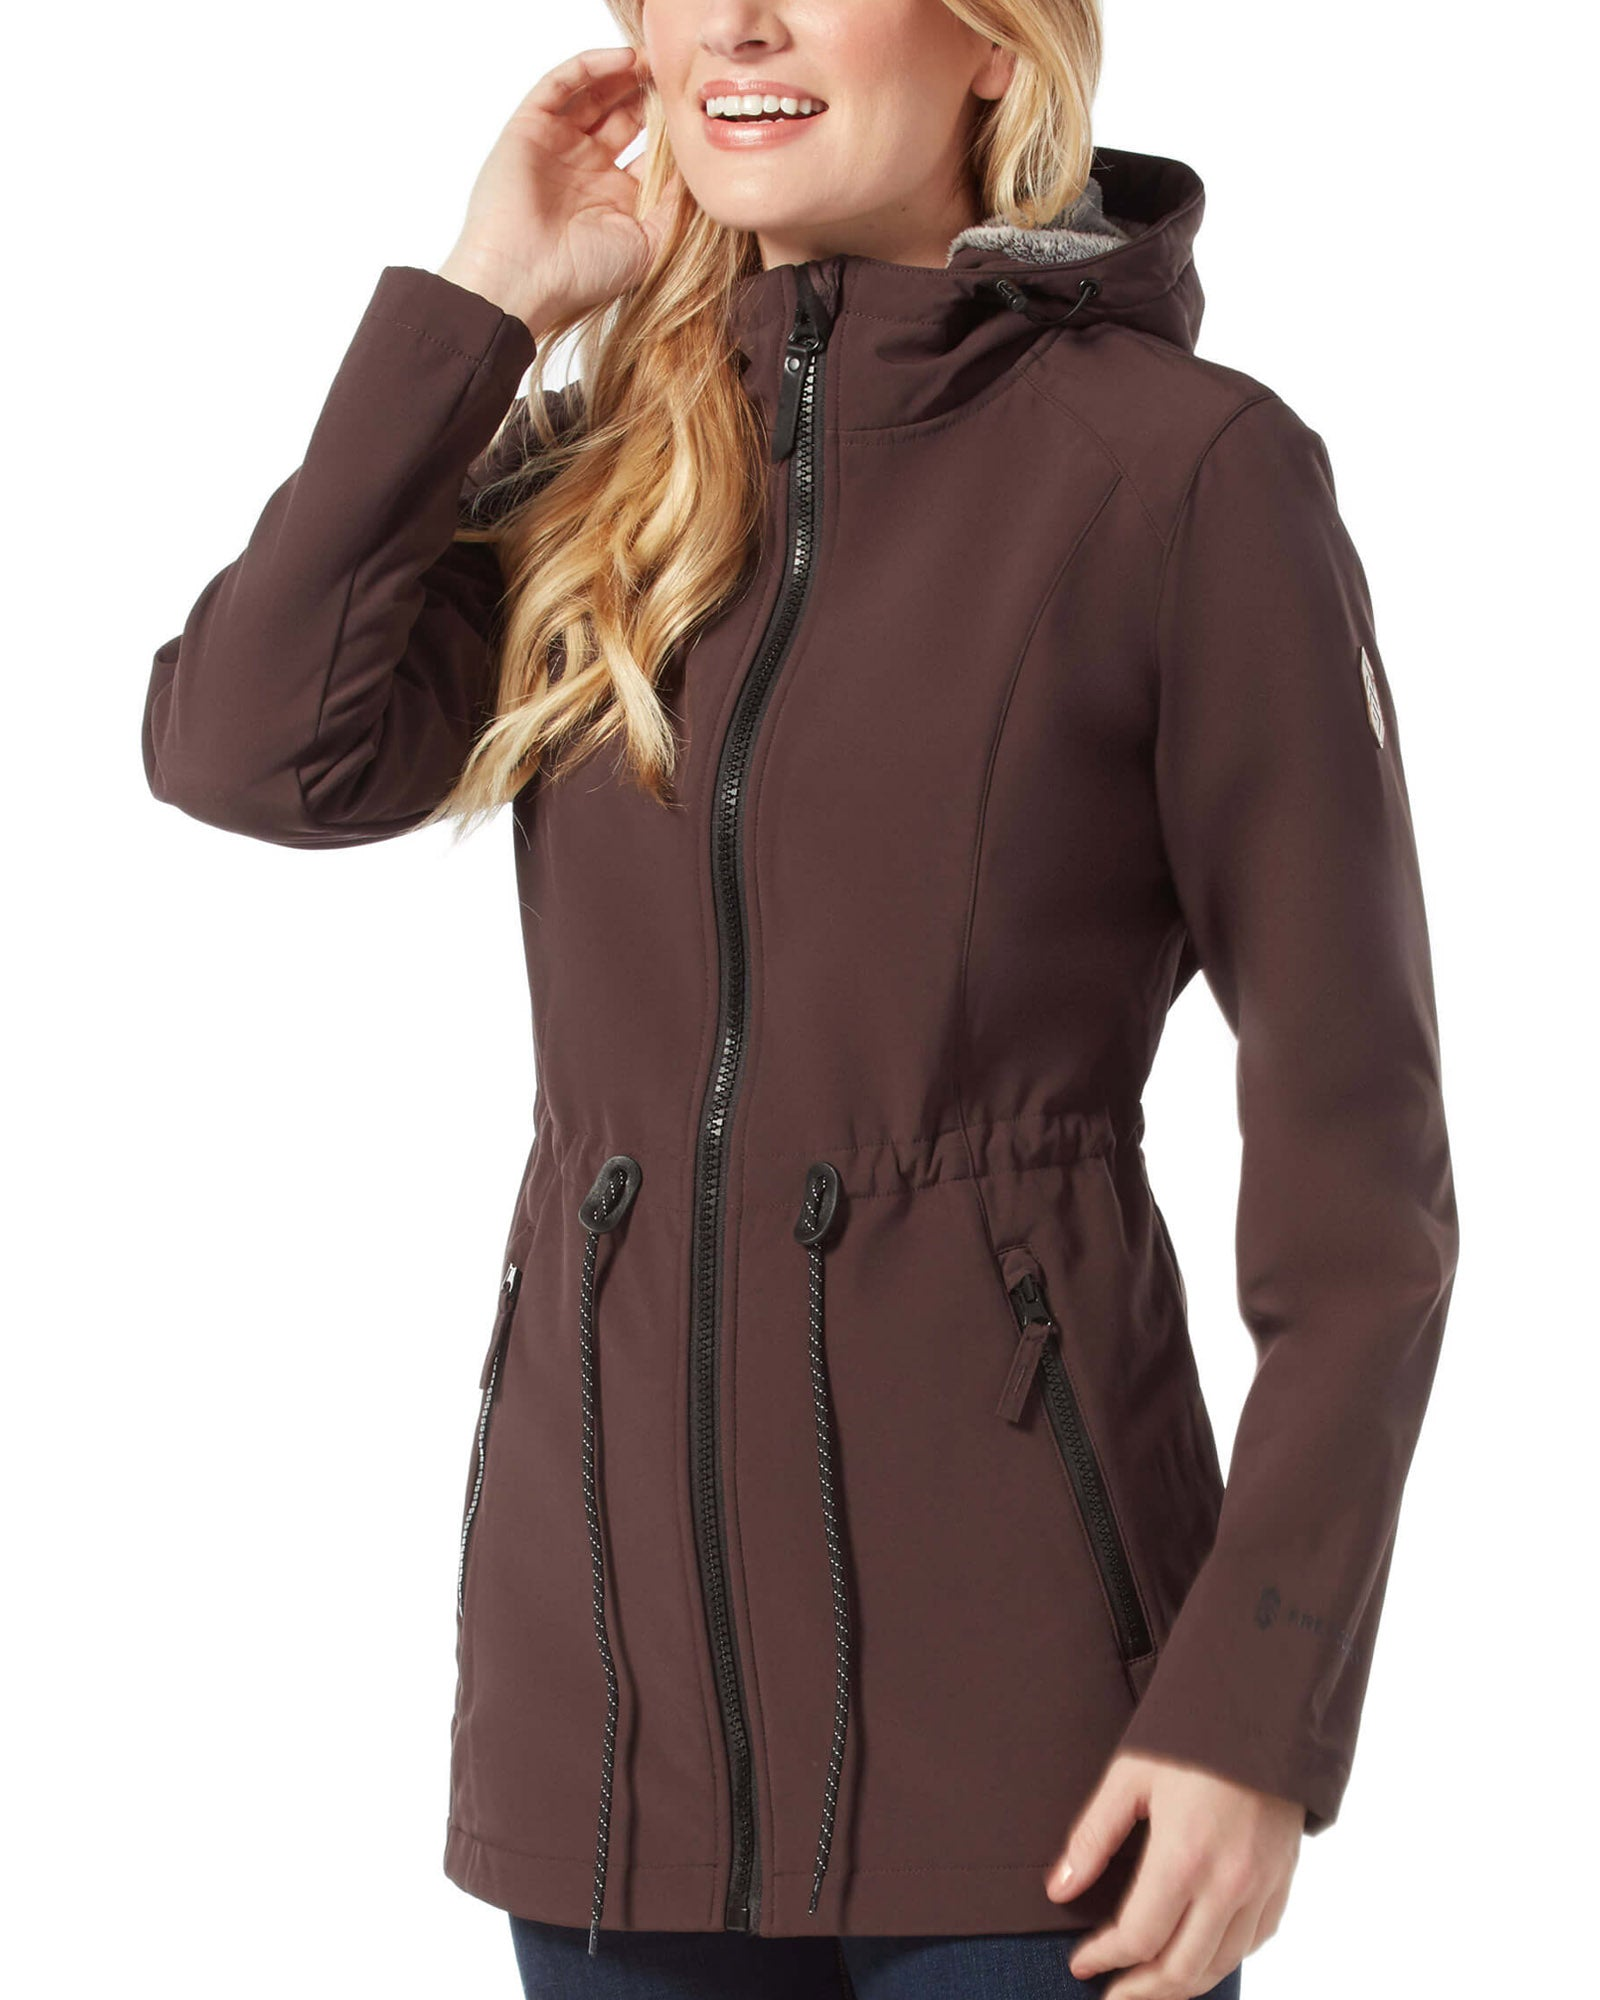 32e2ce189 Women's Jackets & Vests – Softshell – Free Country